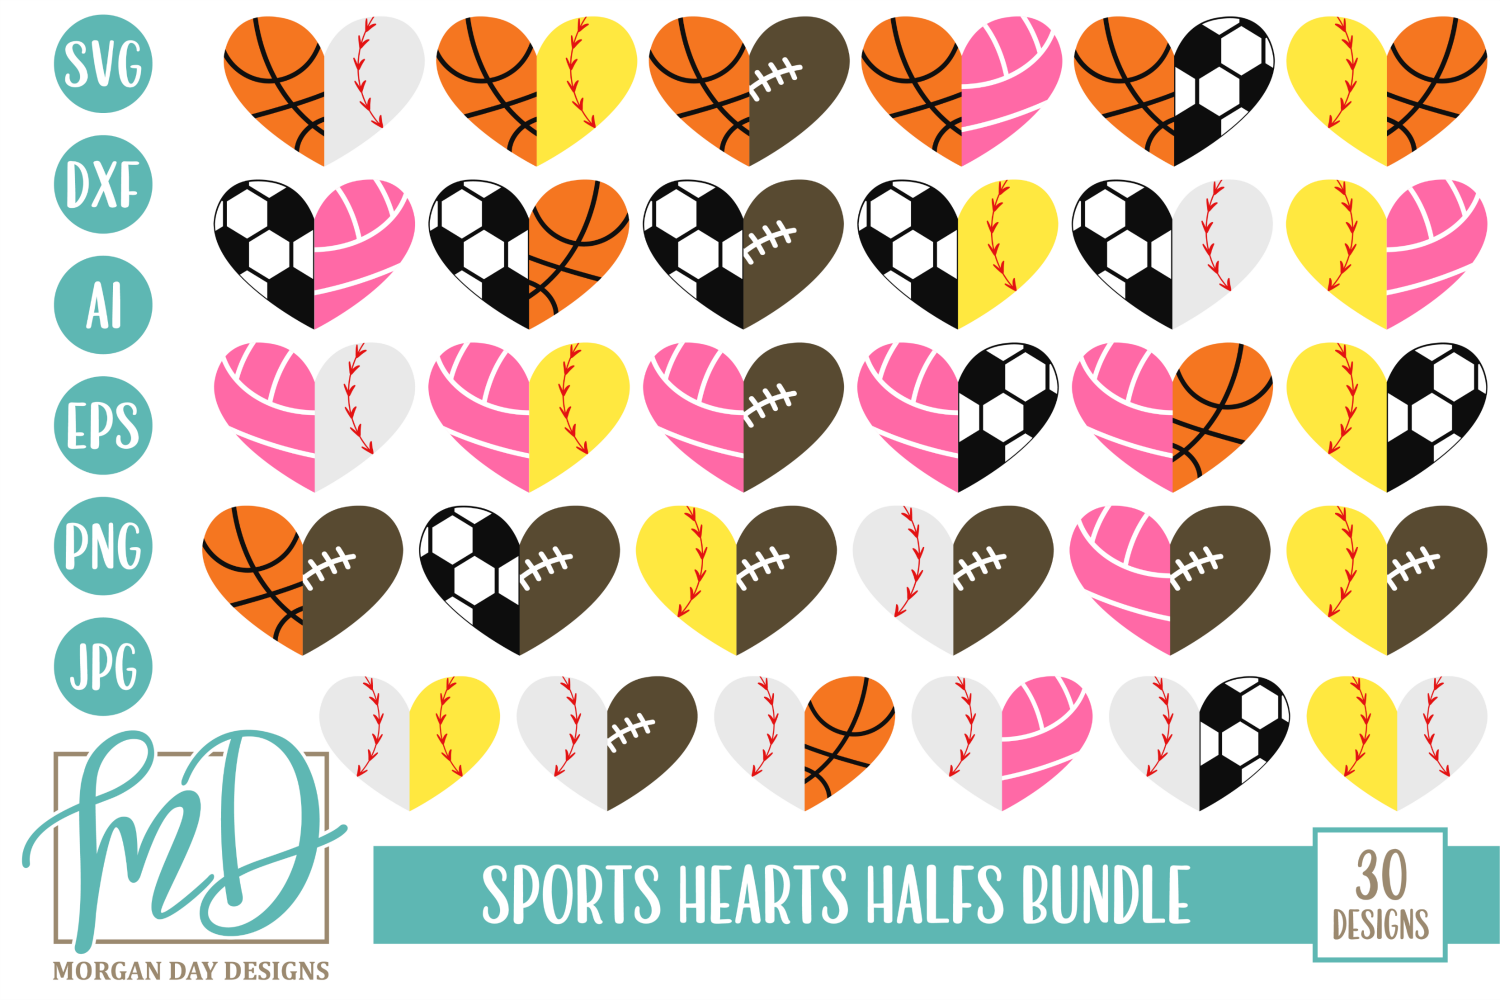 Sports Half Hearts Bundle SVG, DXF, AI, EPS, PNG, JPEG example image 1